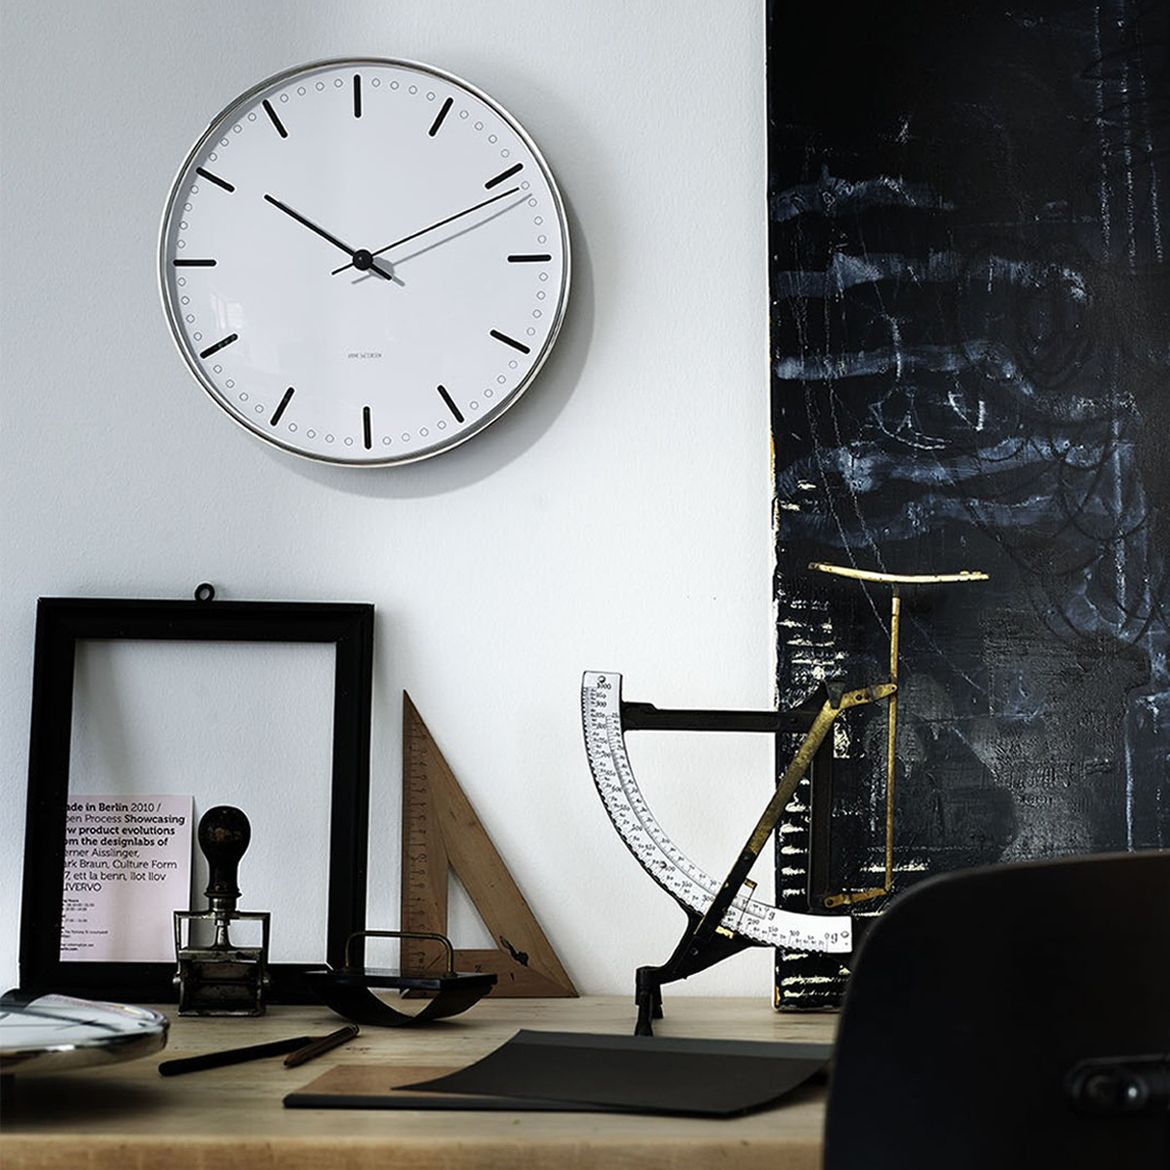 Classic wall clock with monochrome palette